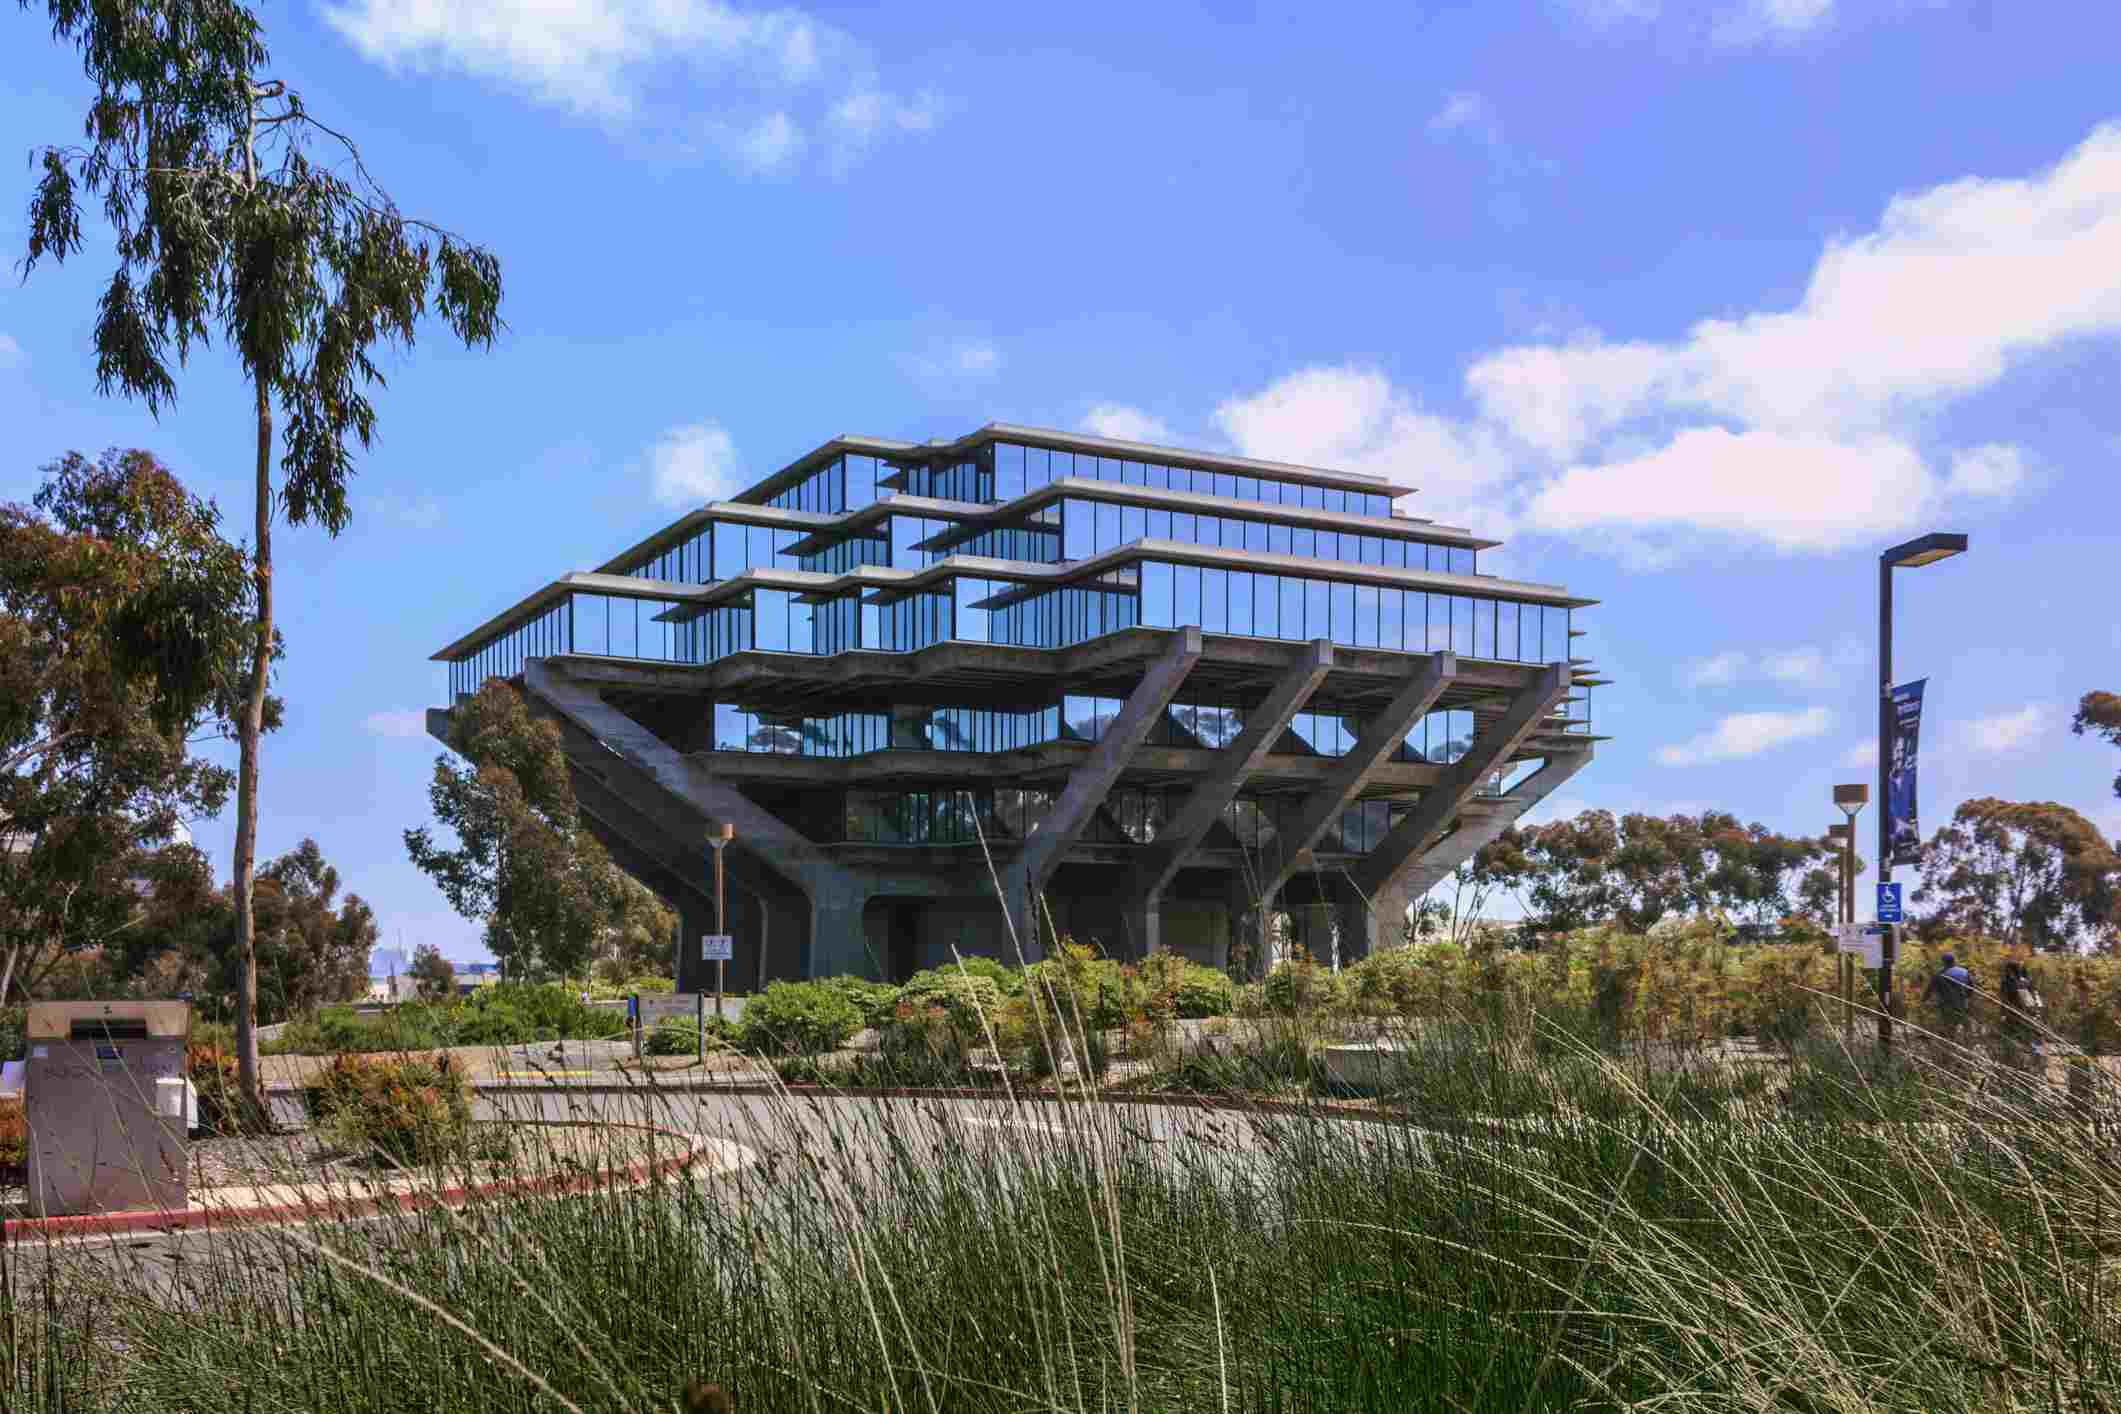 The Geisel Library on Gilman Drive in the campus of the University of California, San Diego (UCSD).